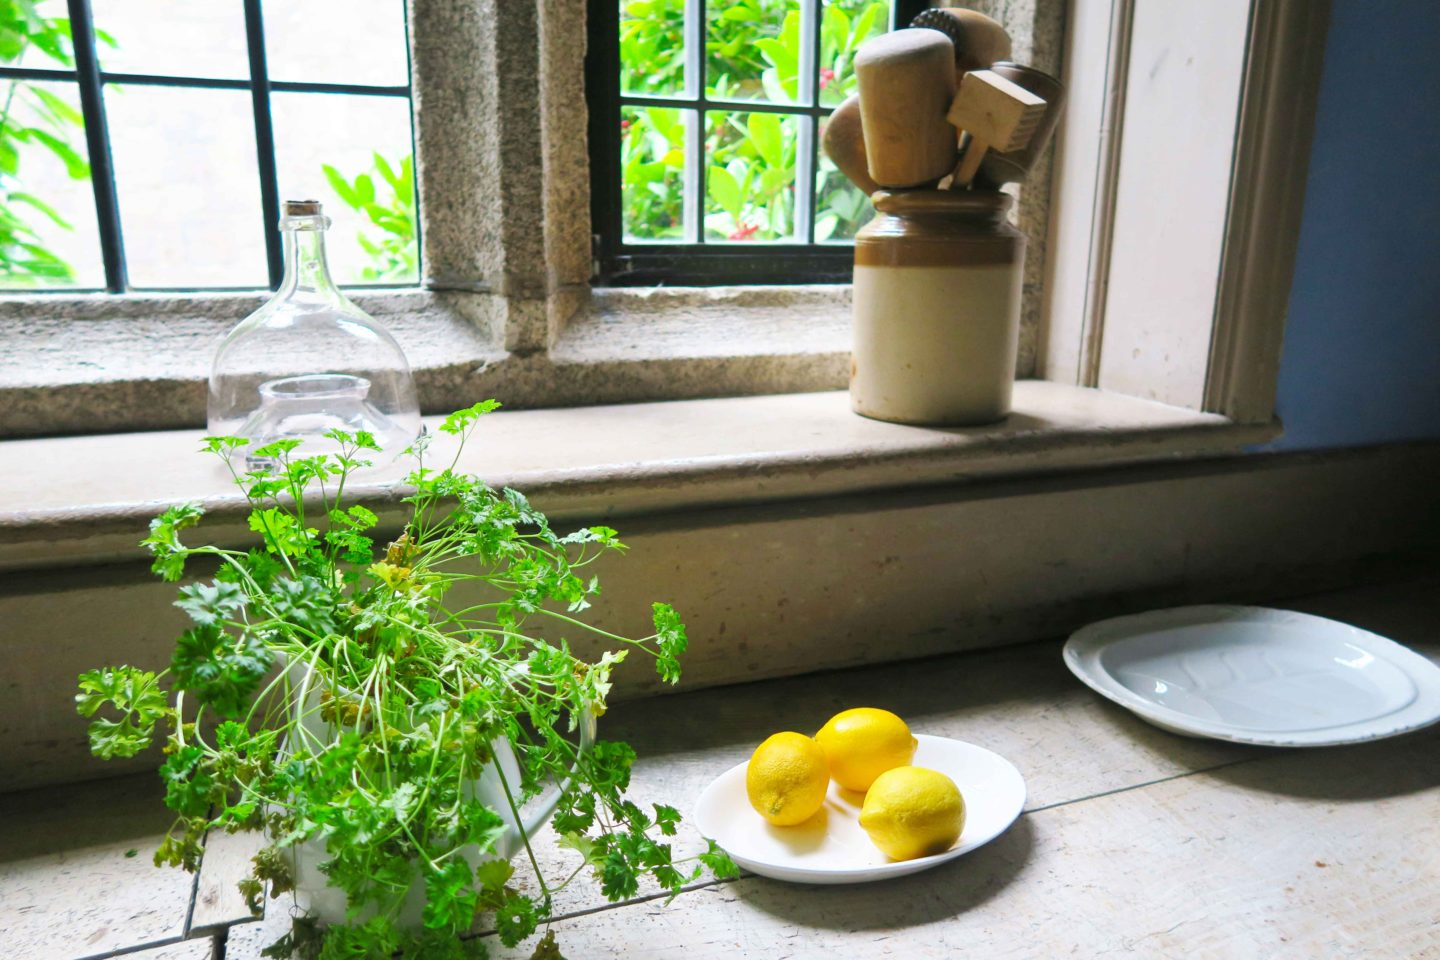 lemons in kitchen at lanhydrock house owned by the national trust